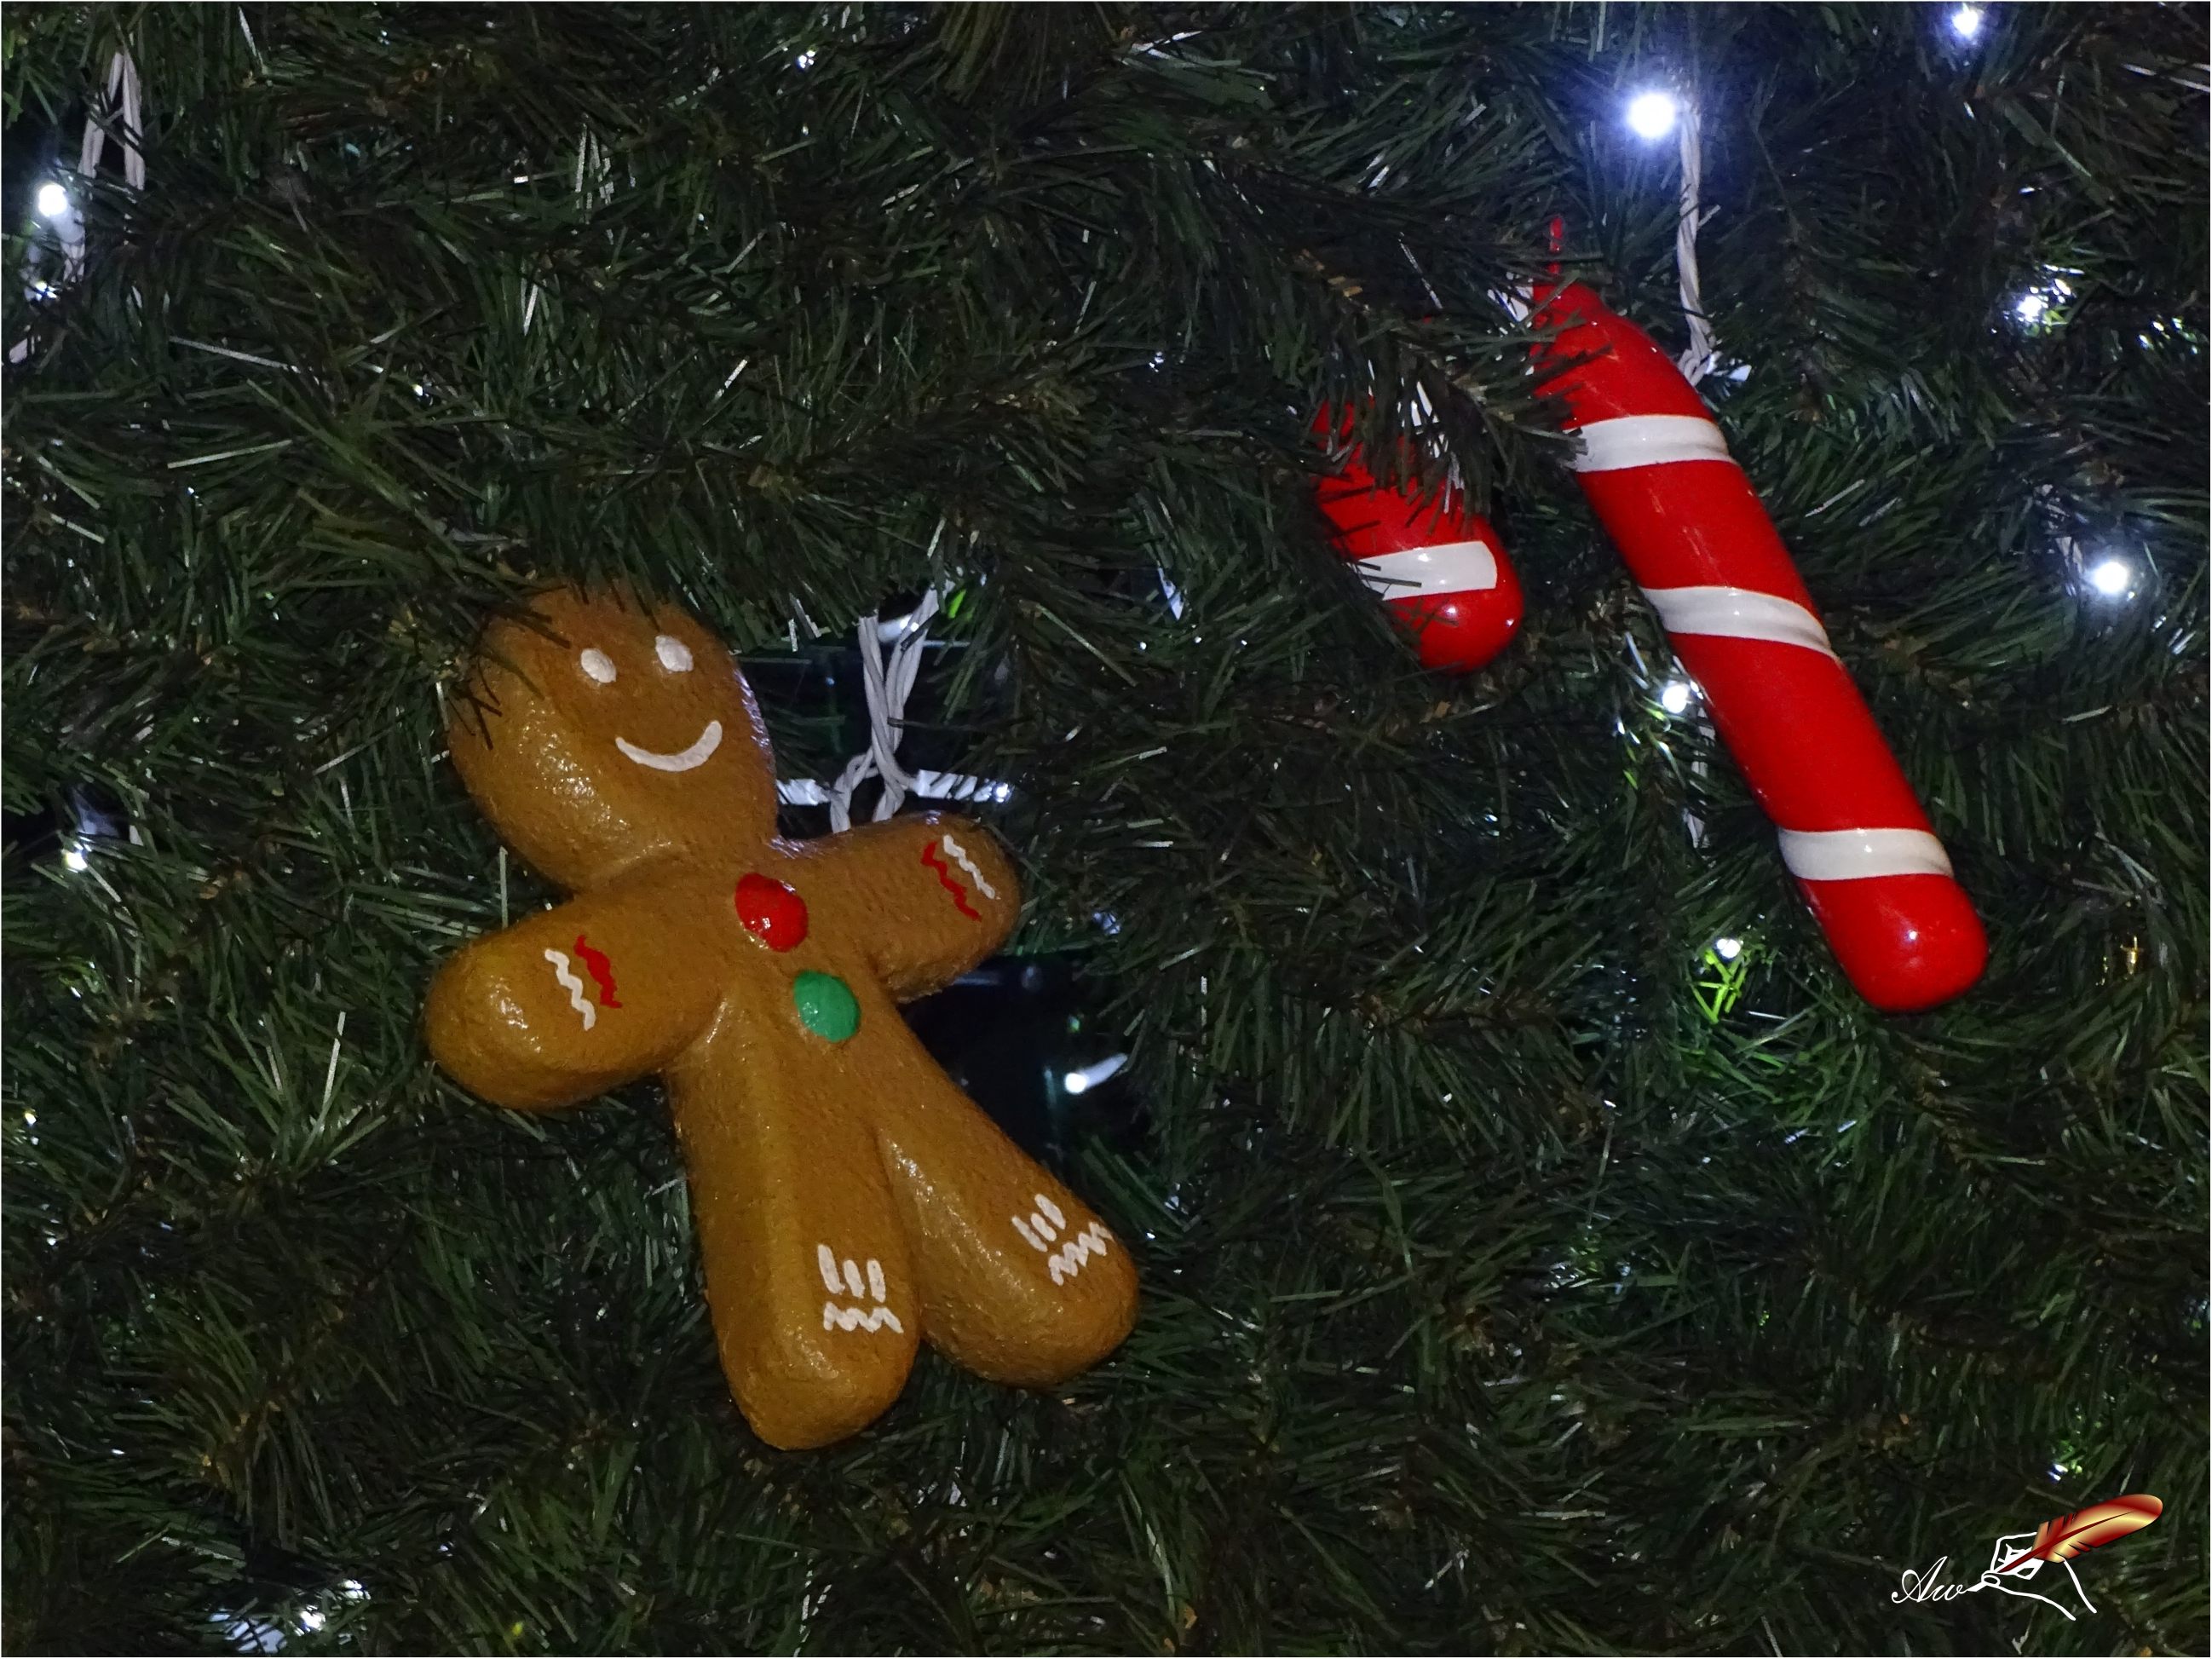 Gingerbread man and candy cane in Christmas tree - by Andrada Anitei